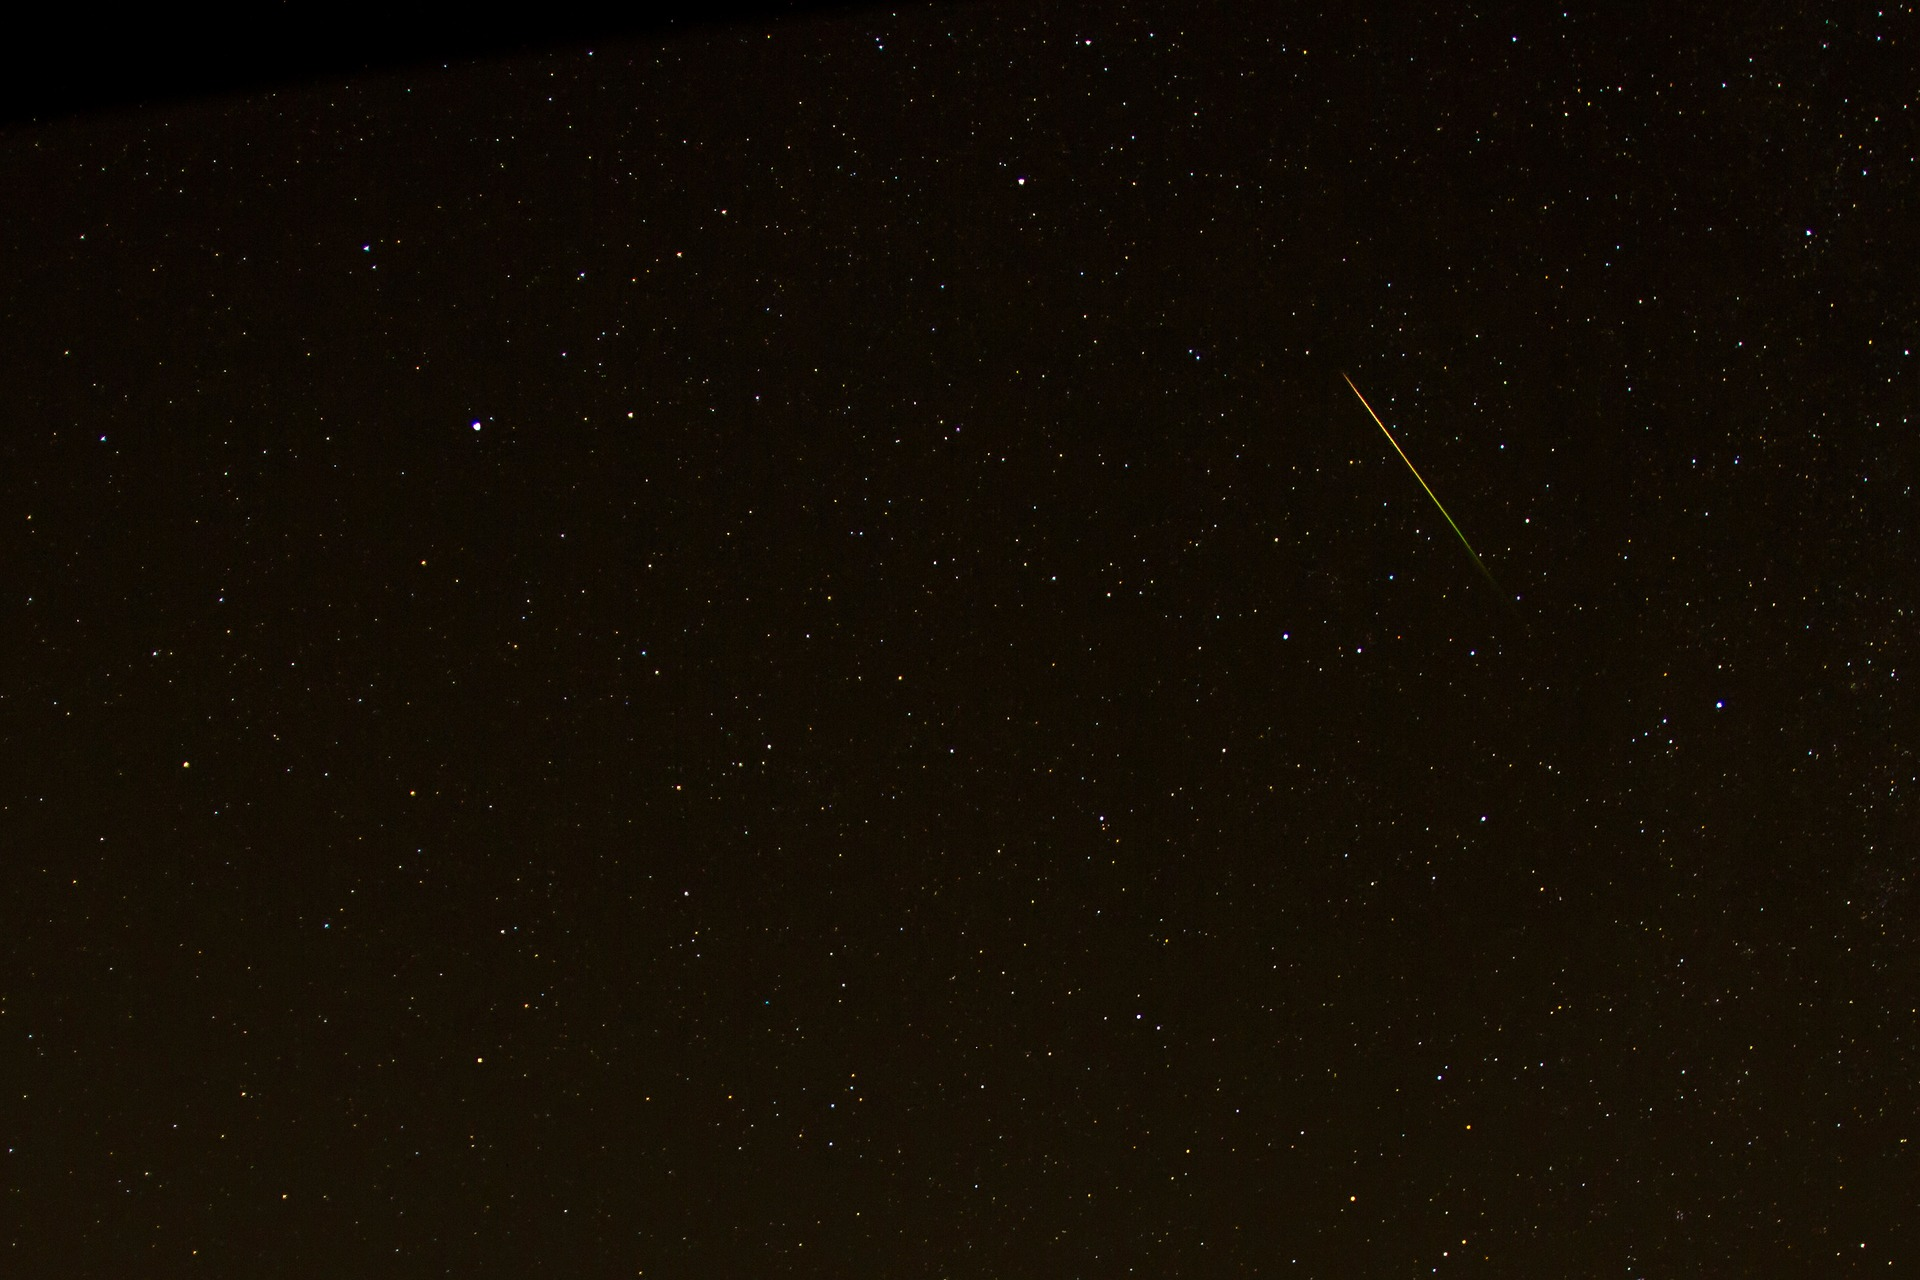 shooting-star-3601173_1920.jpg